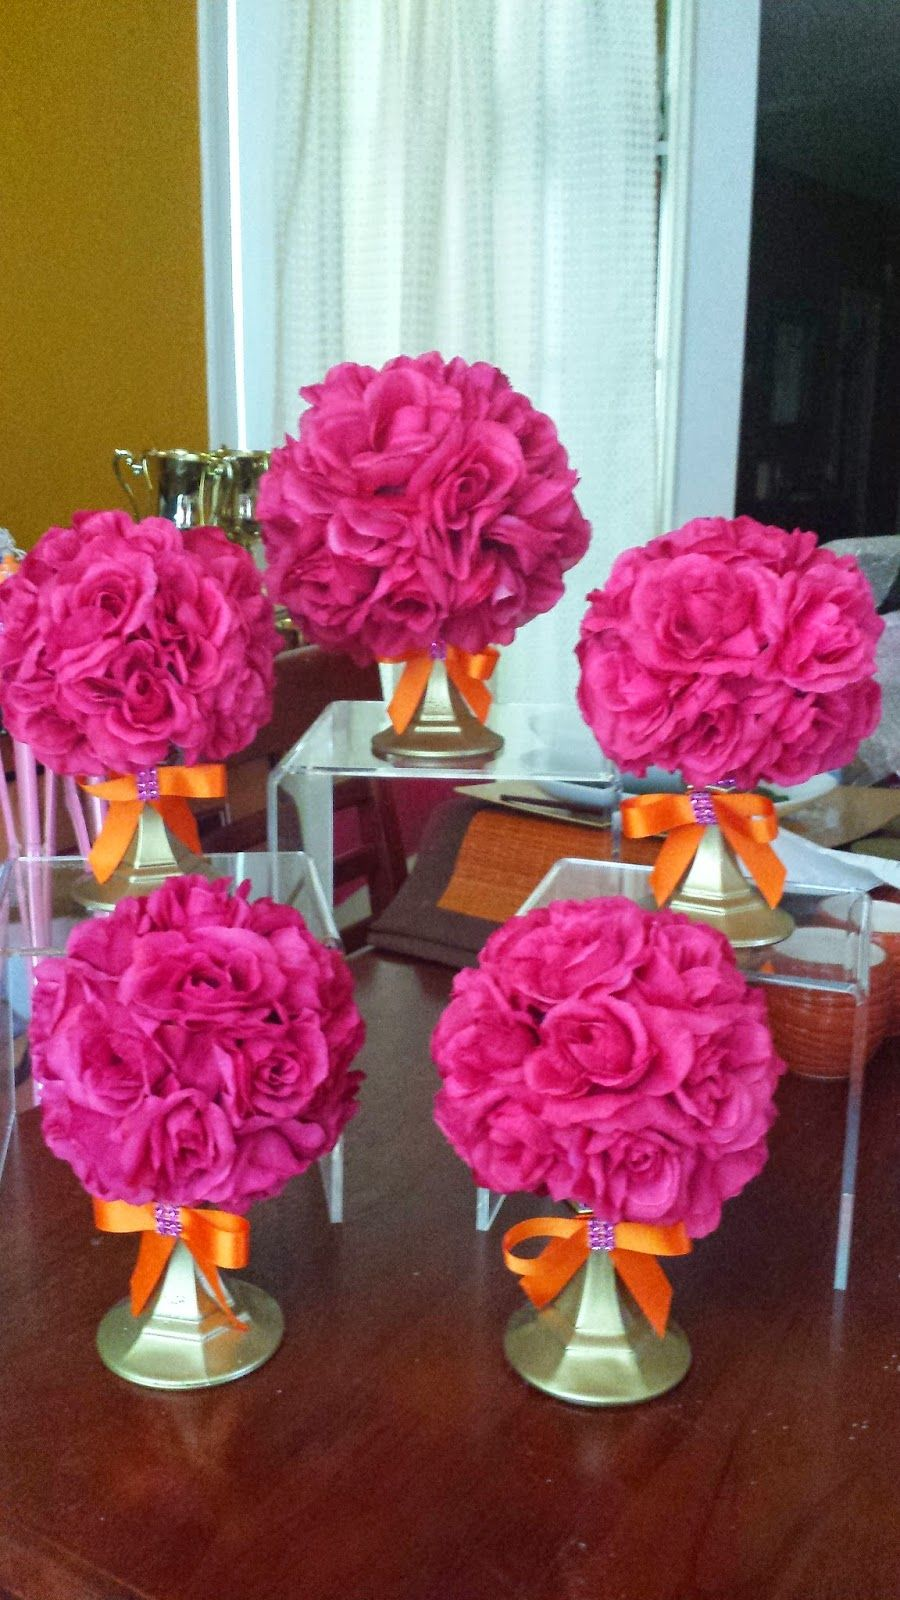 Felicia S Event Design And Planning Orange Pink Rose Ball Centerpieces